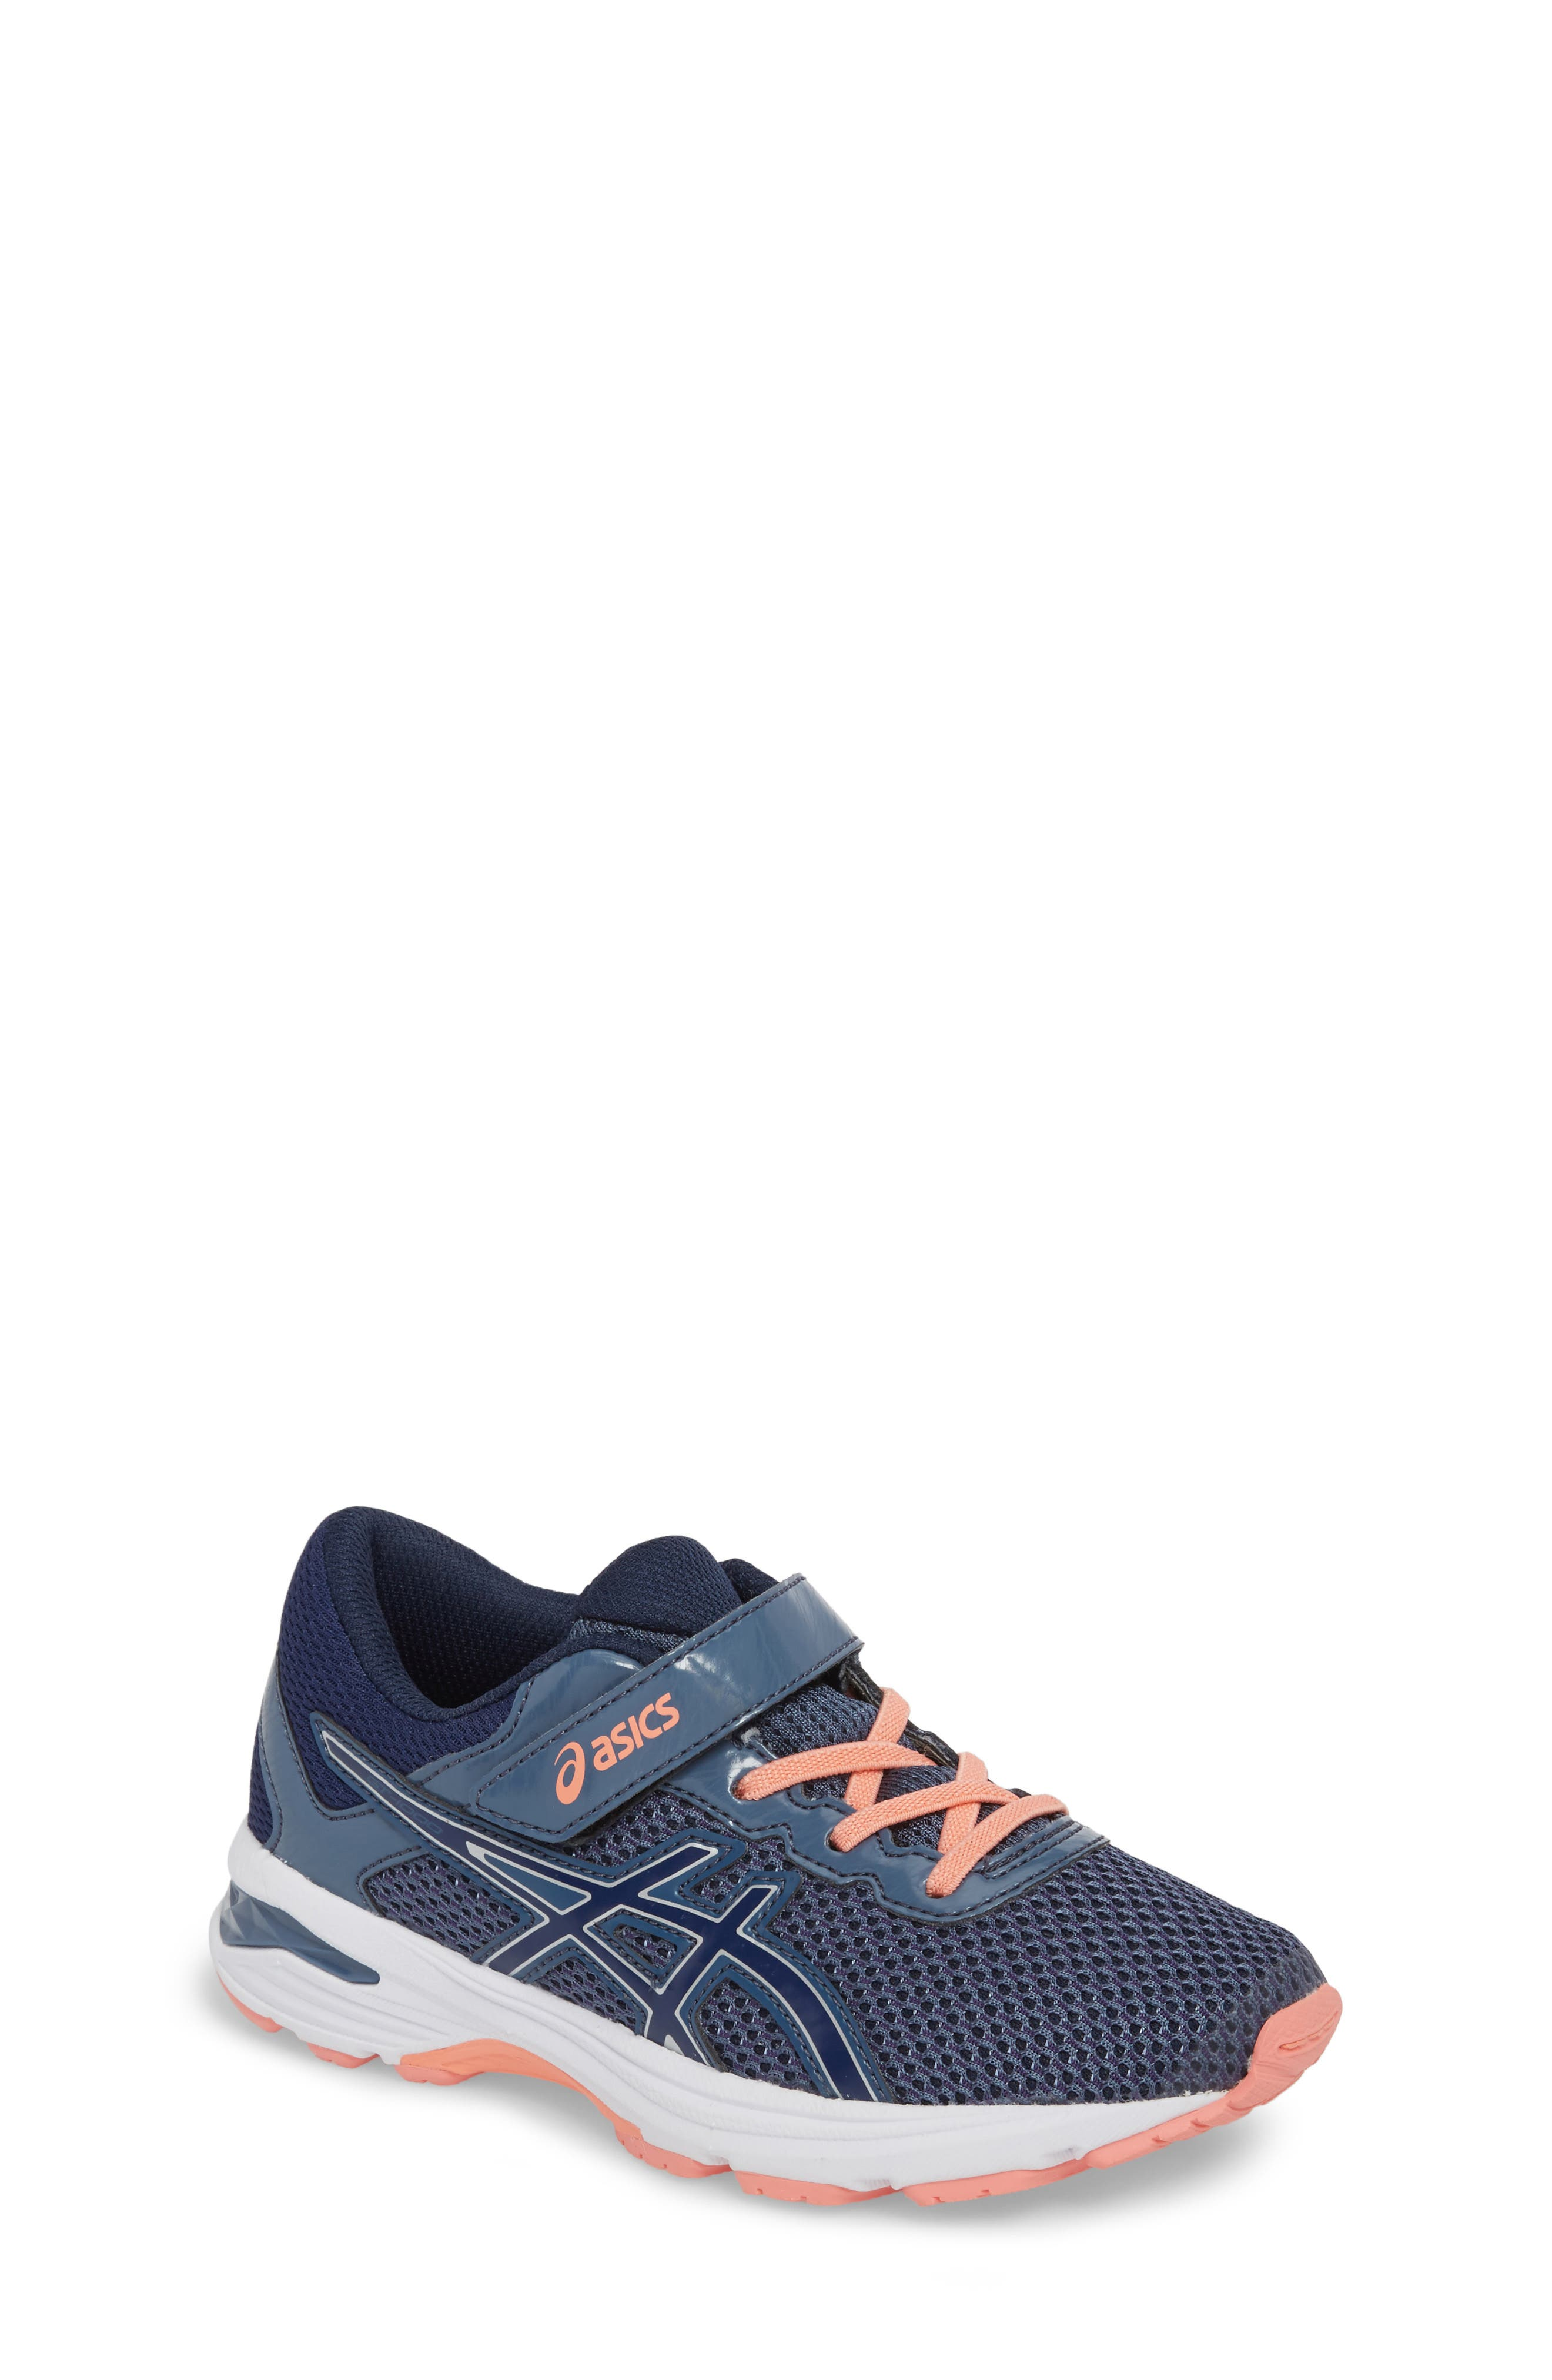 Asics GT-1000<sup>™</sup> 6 PS Sneaker,                             Main thumbnail 2, color,